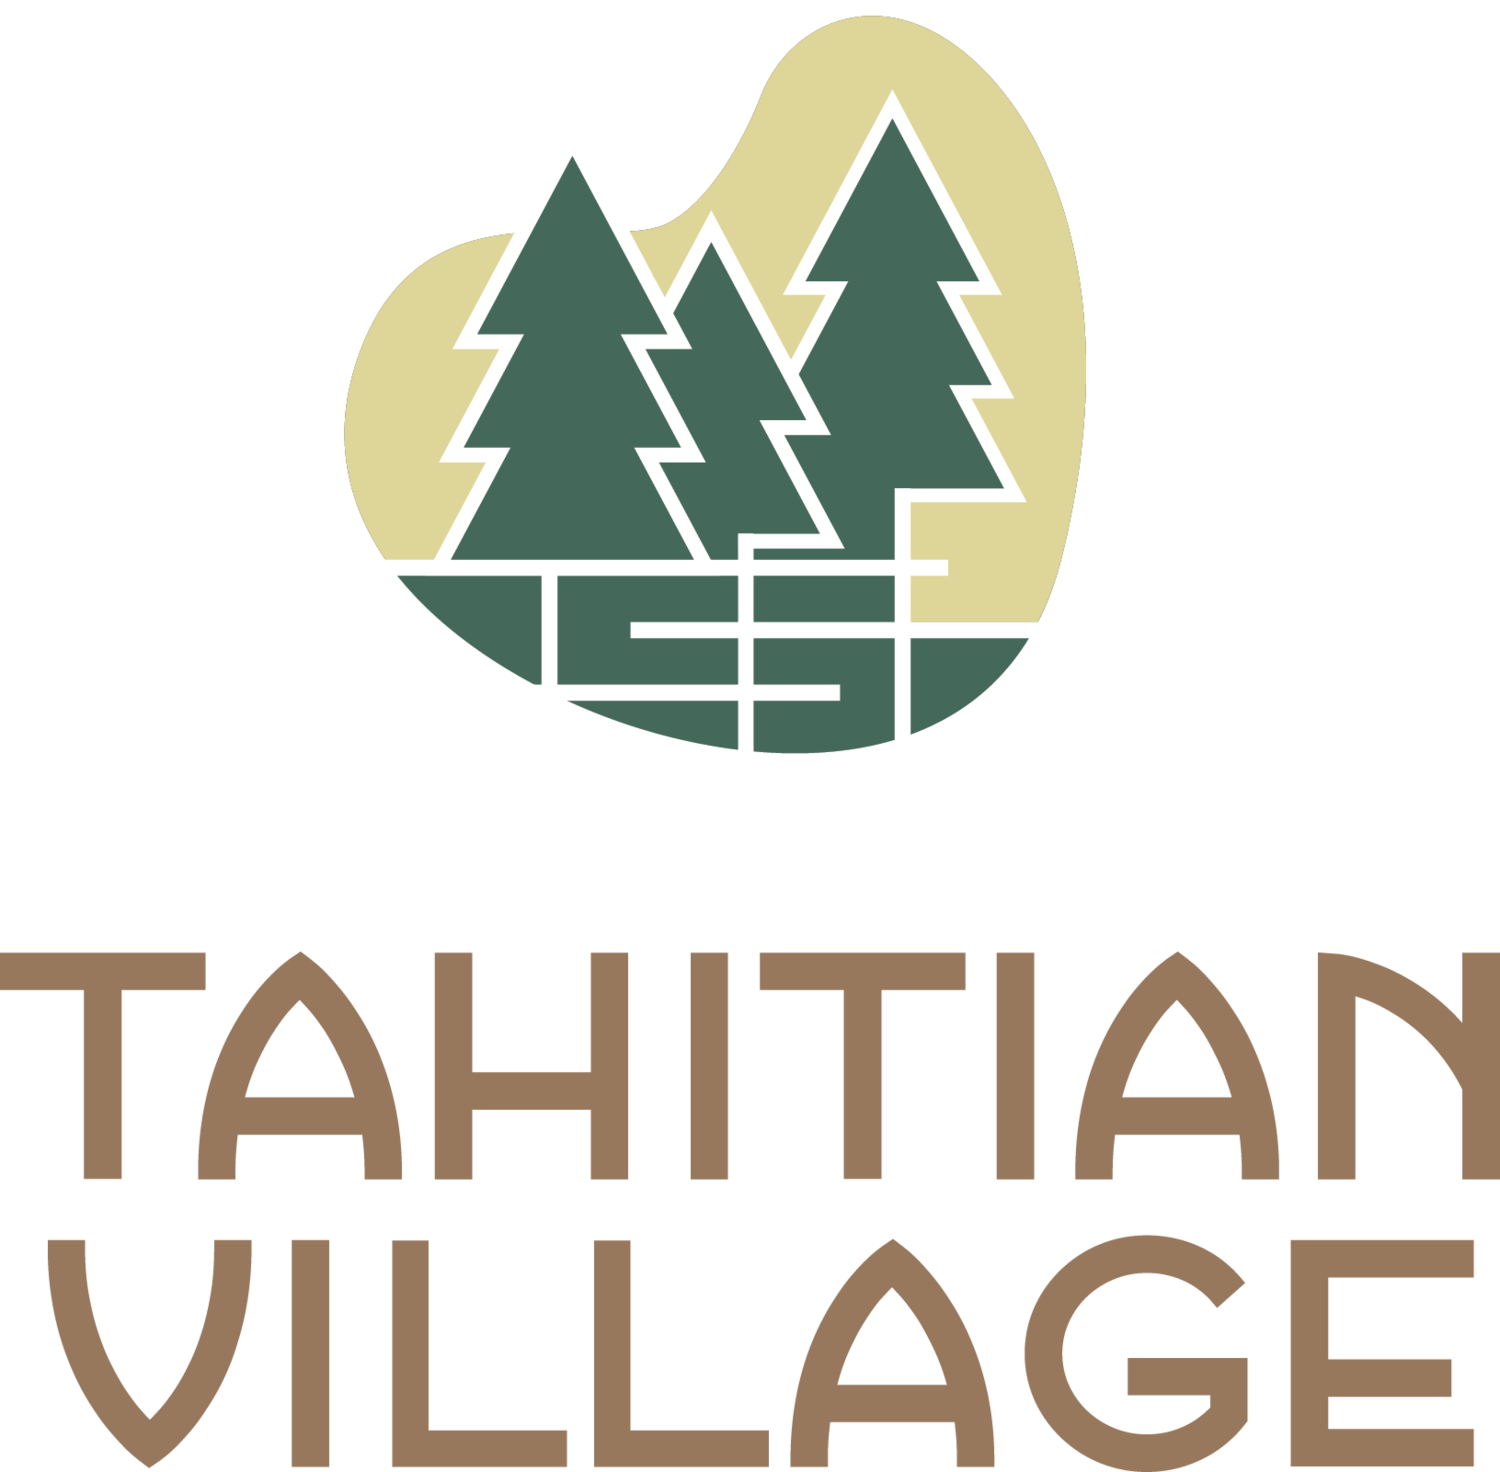 About TVPOA — Tahitian Village Property Owners Association